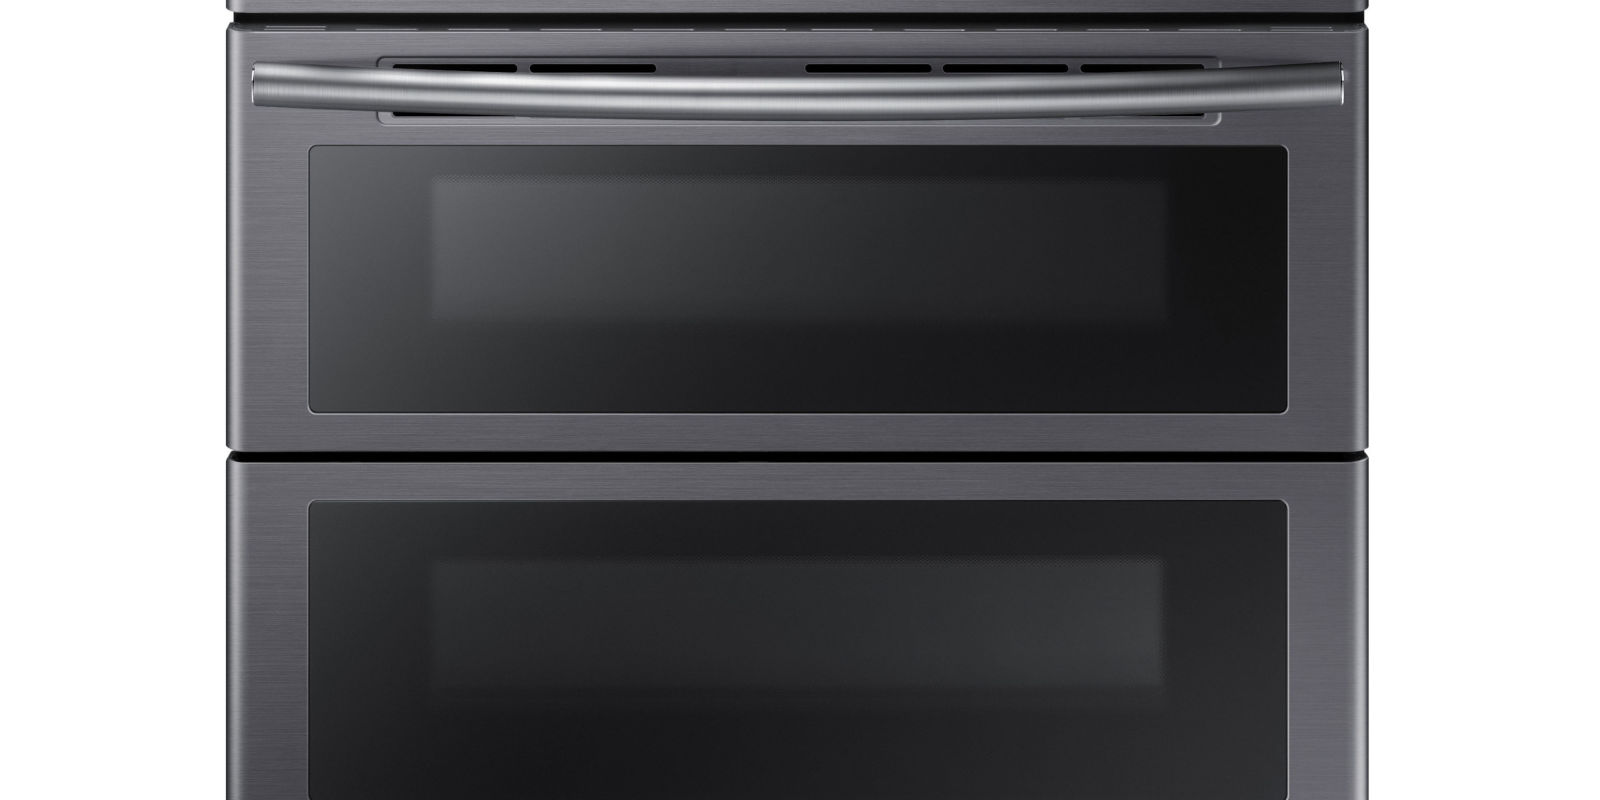 samsung range. samsung wi-fi slide-in range with soft close dual door #nx58k9850sg review, price and features